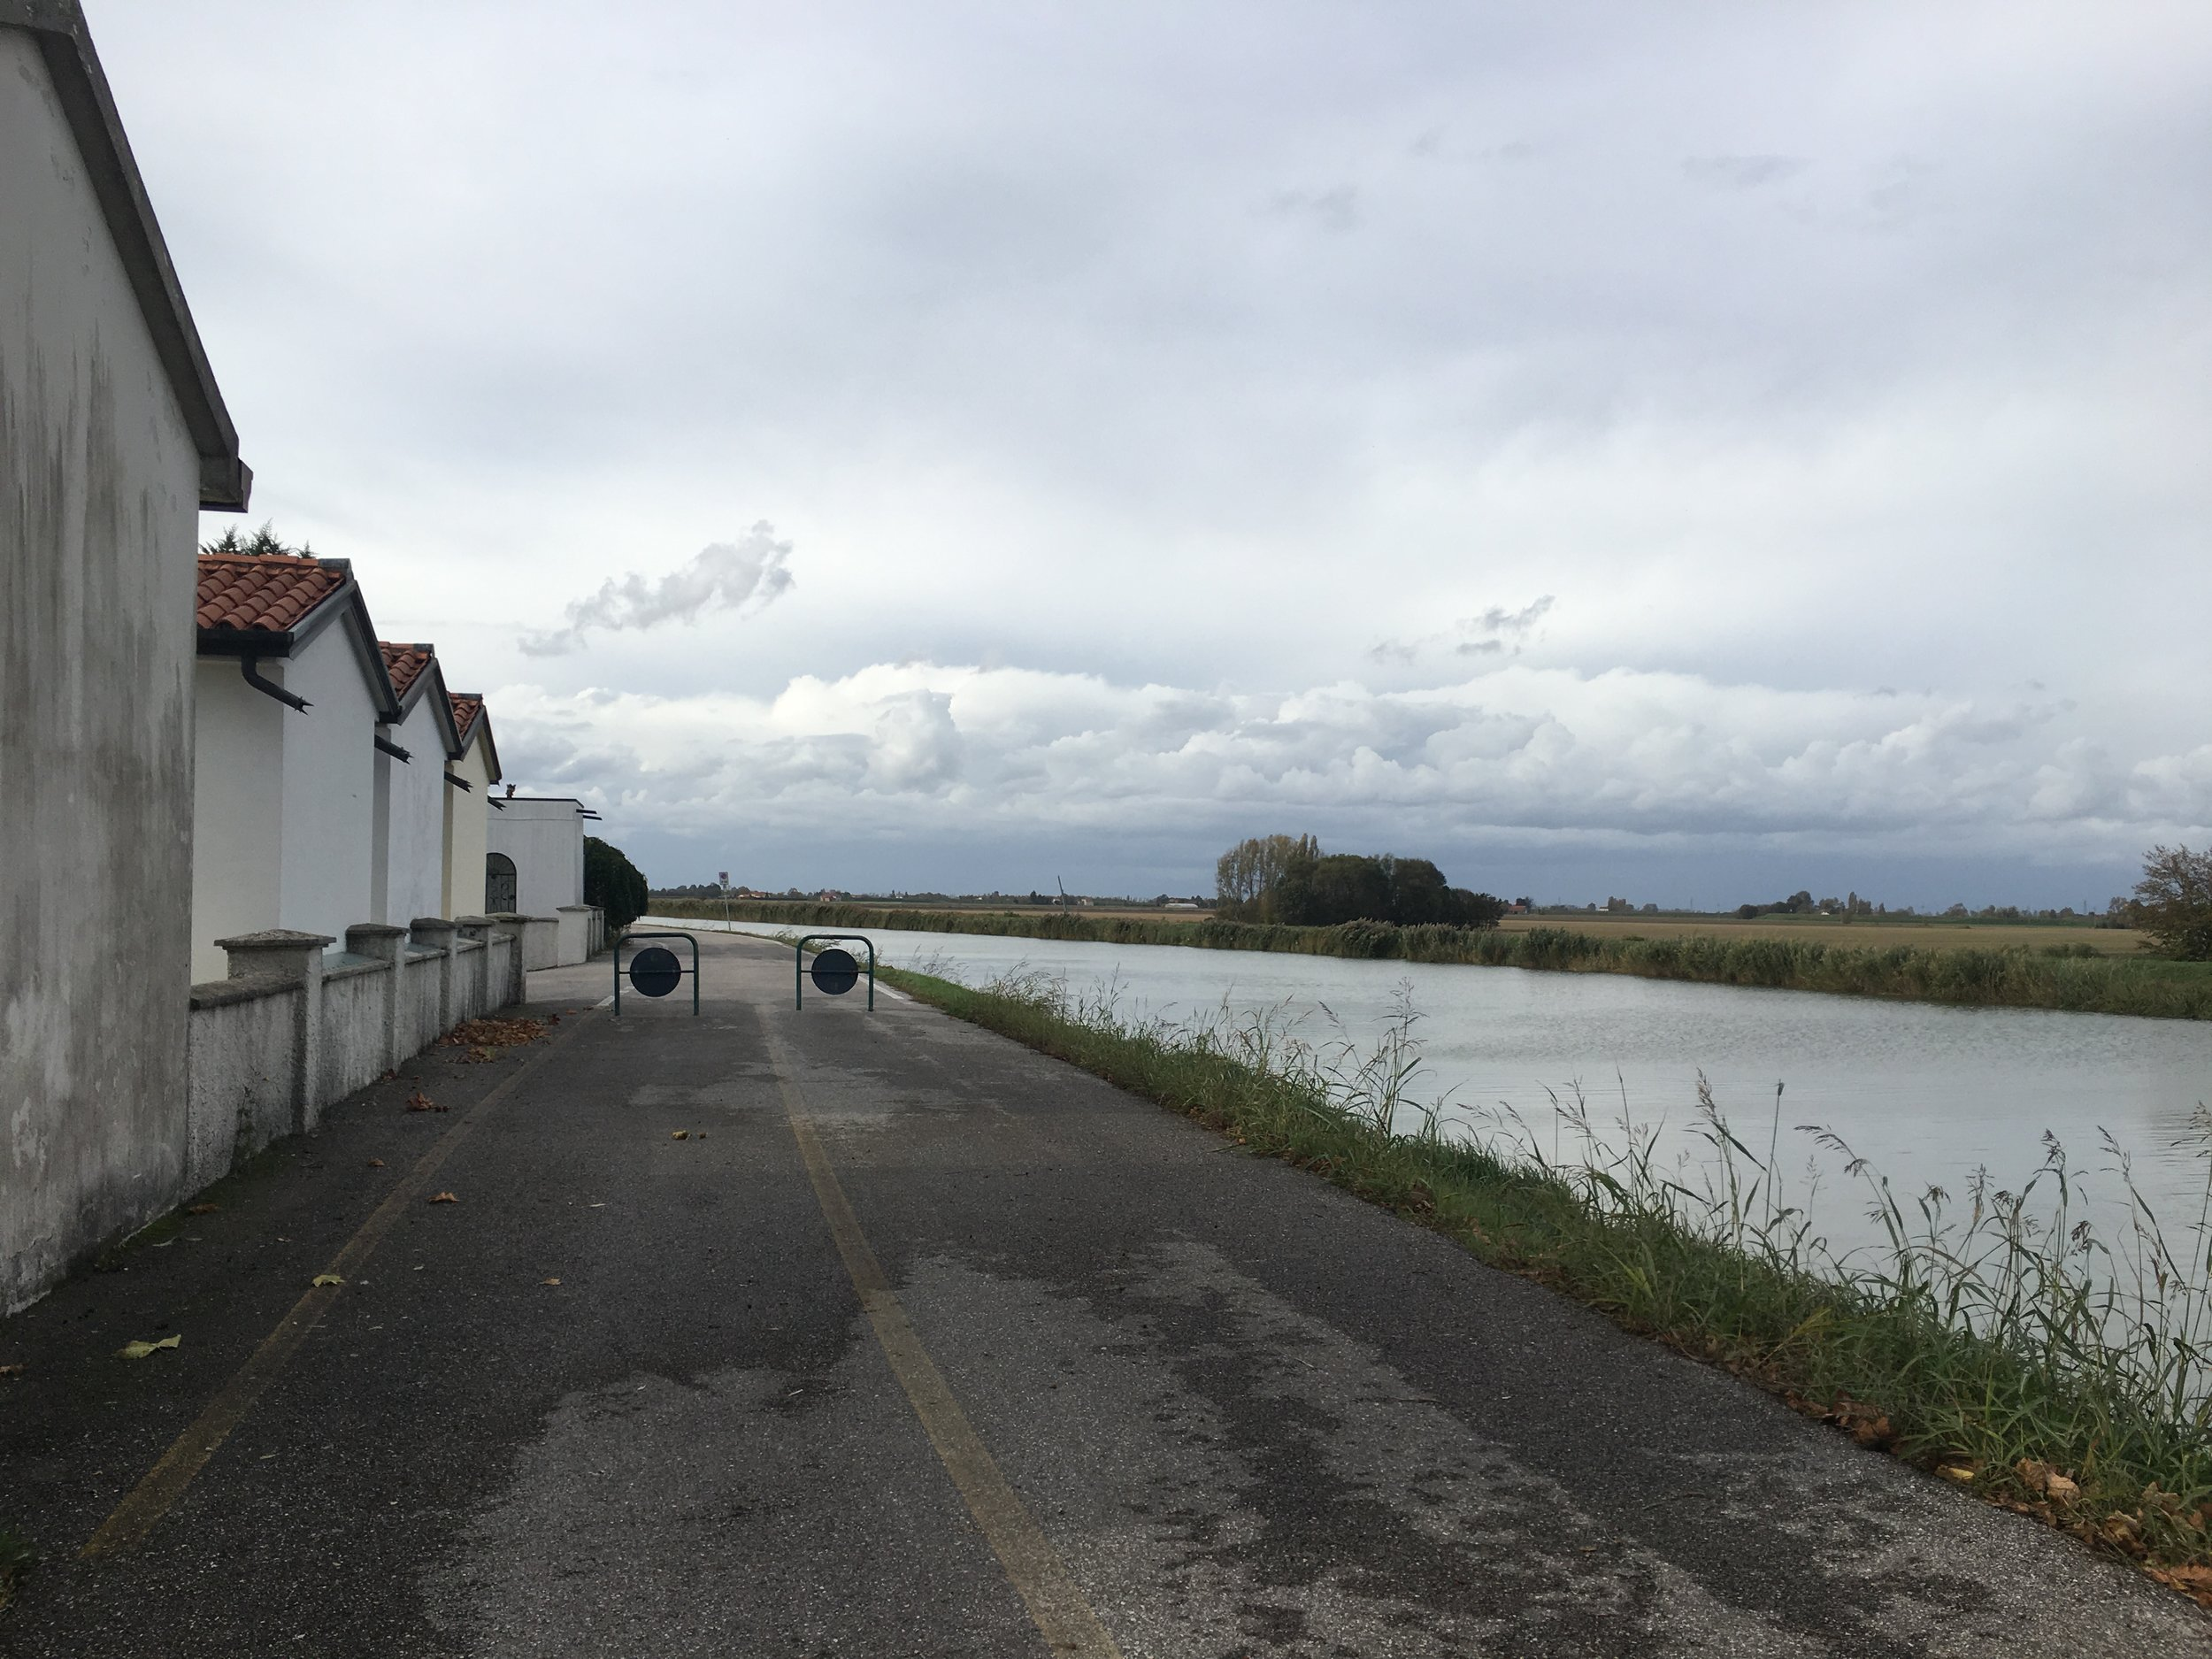 We cycled down this bike path next to the canal for much of the day.